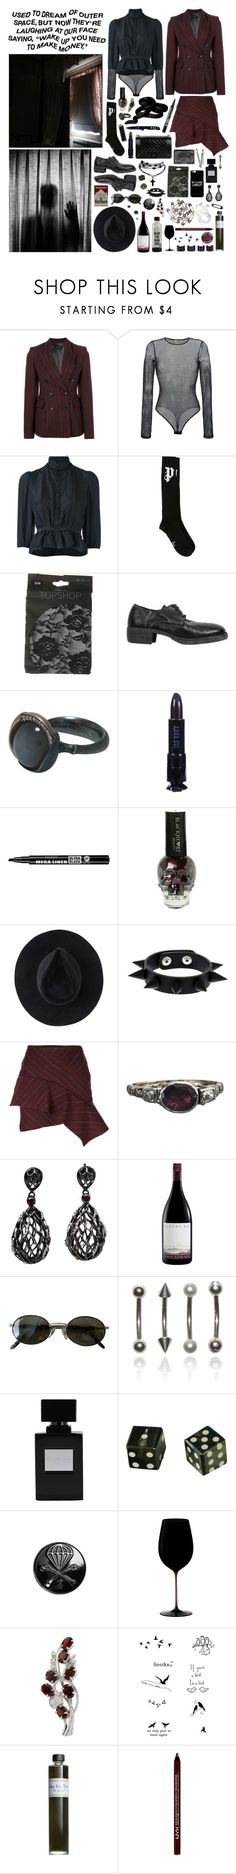 """""""you can't live without problems if you lie"""" by nothingisnormal ❤ liked on Polyvore featuring Isabel Marant, Faith Connexion, Dsquared2, Palm Angels, Guidi, Ole Lynggaard, Chanel, Gerber, Anna Sui and Bourjois"""